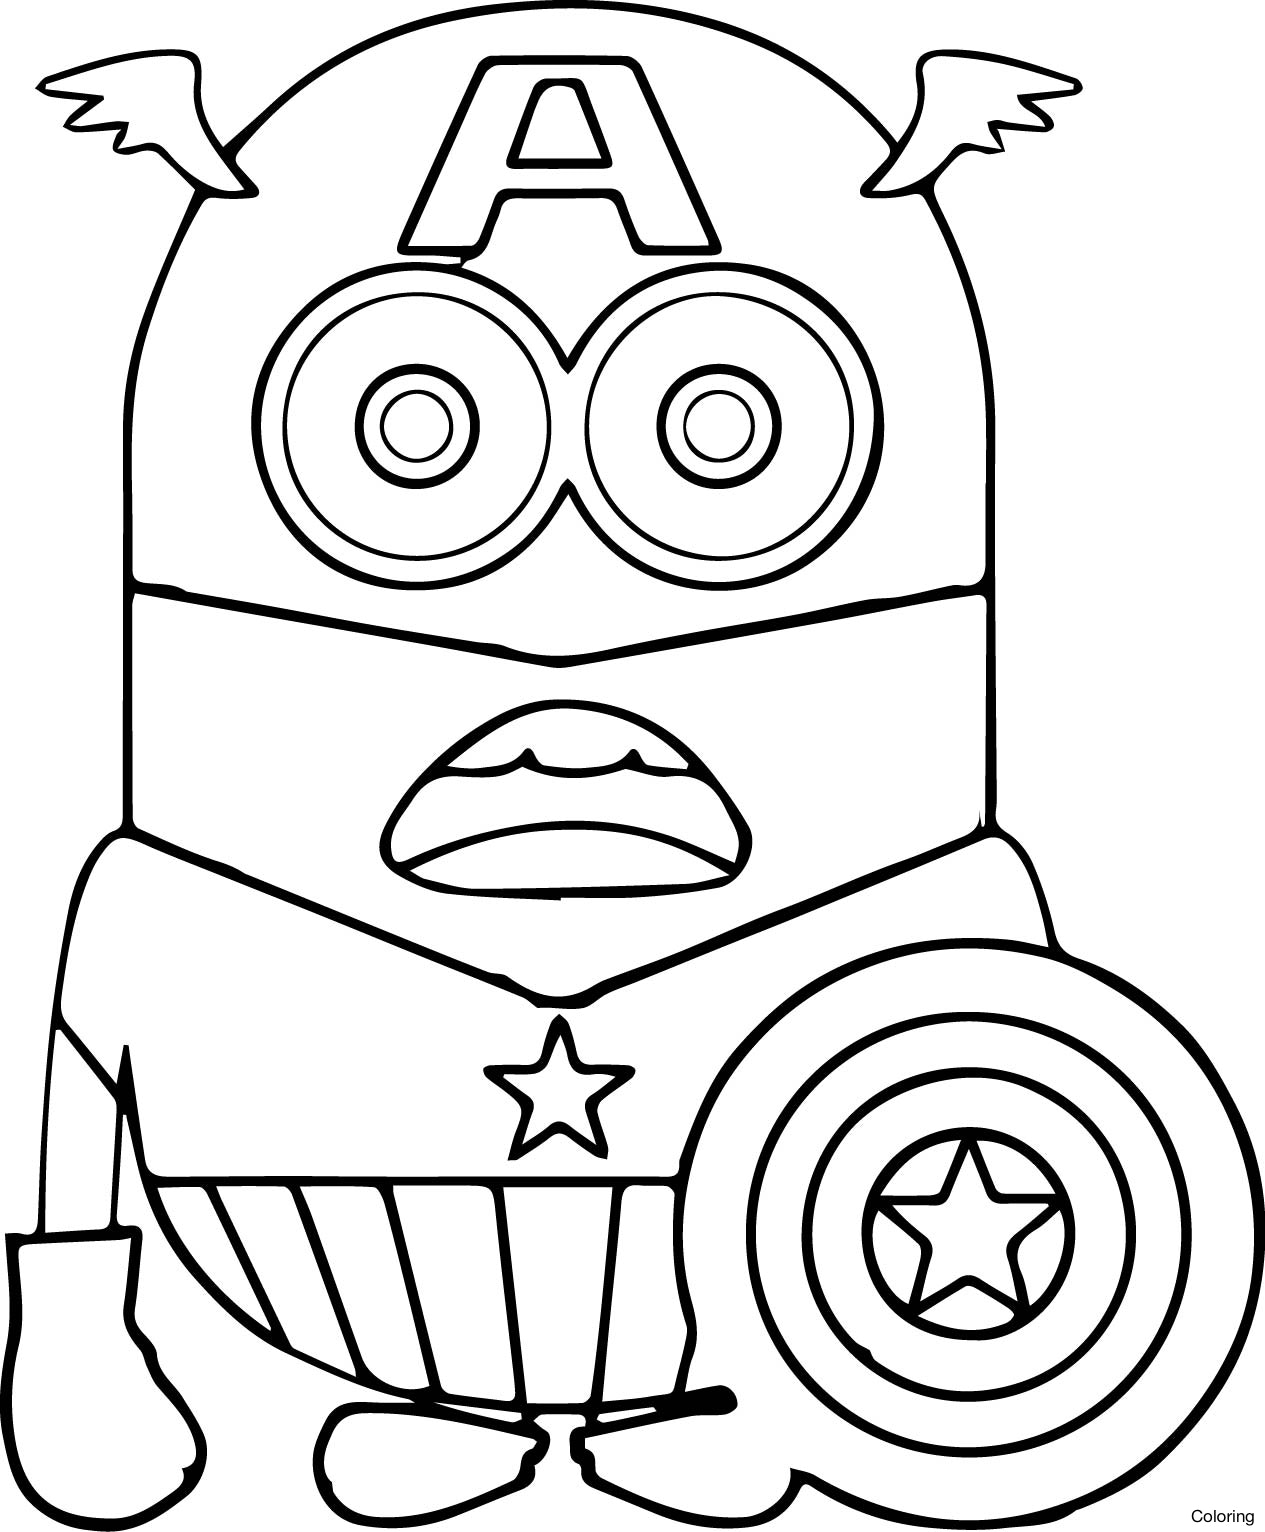 1265x1532 Minion Color Sheet Coloring Girl Minions Pages 23f Printable